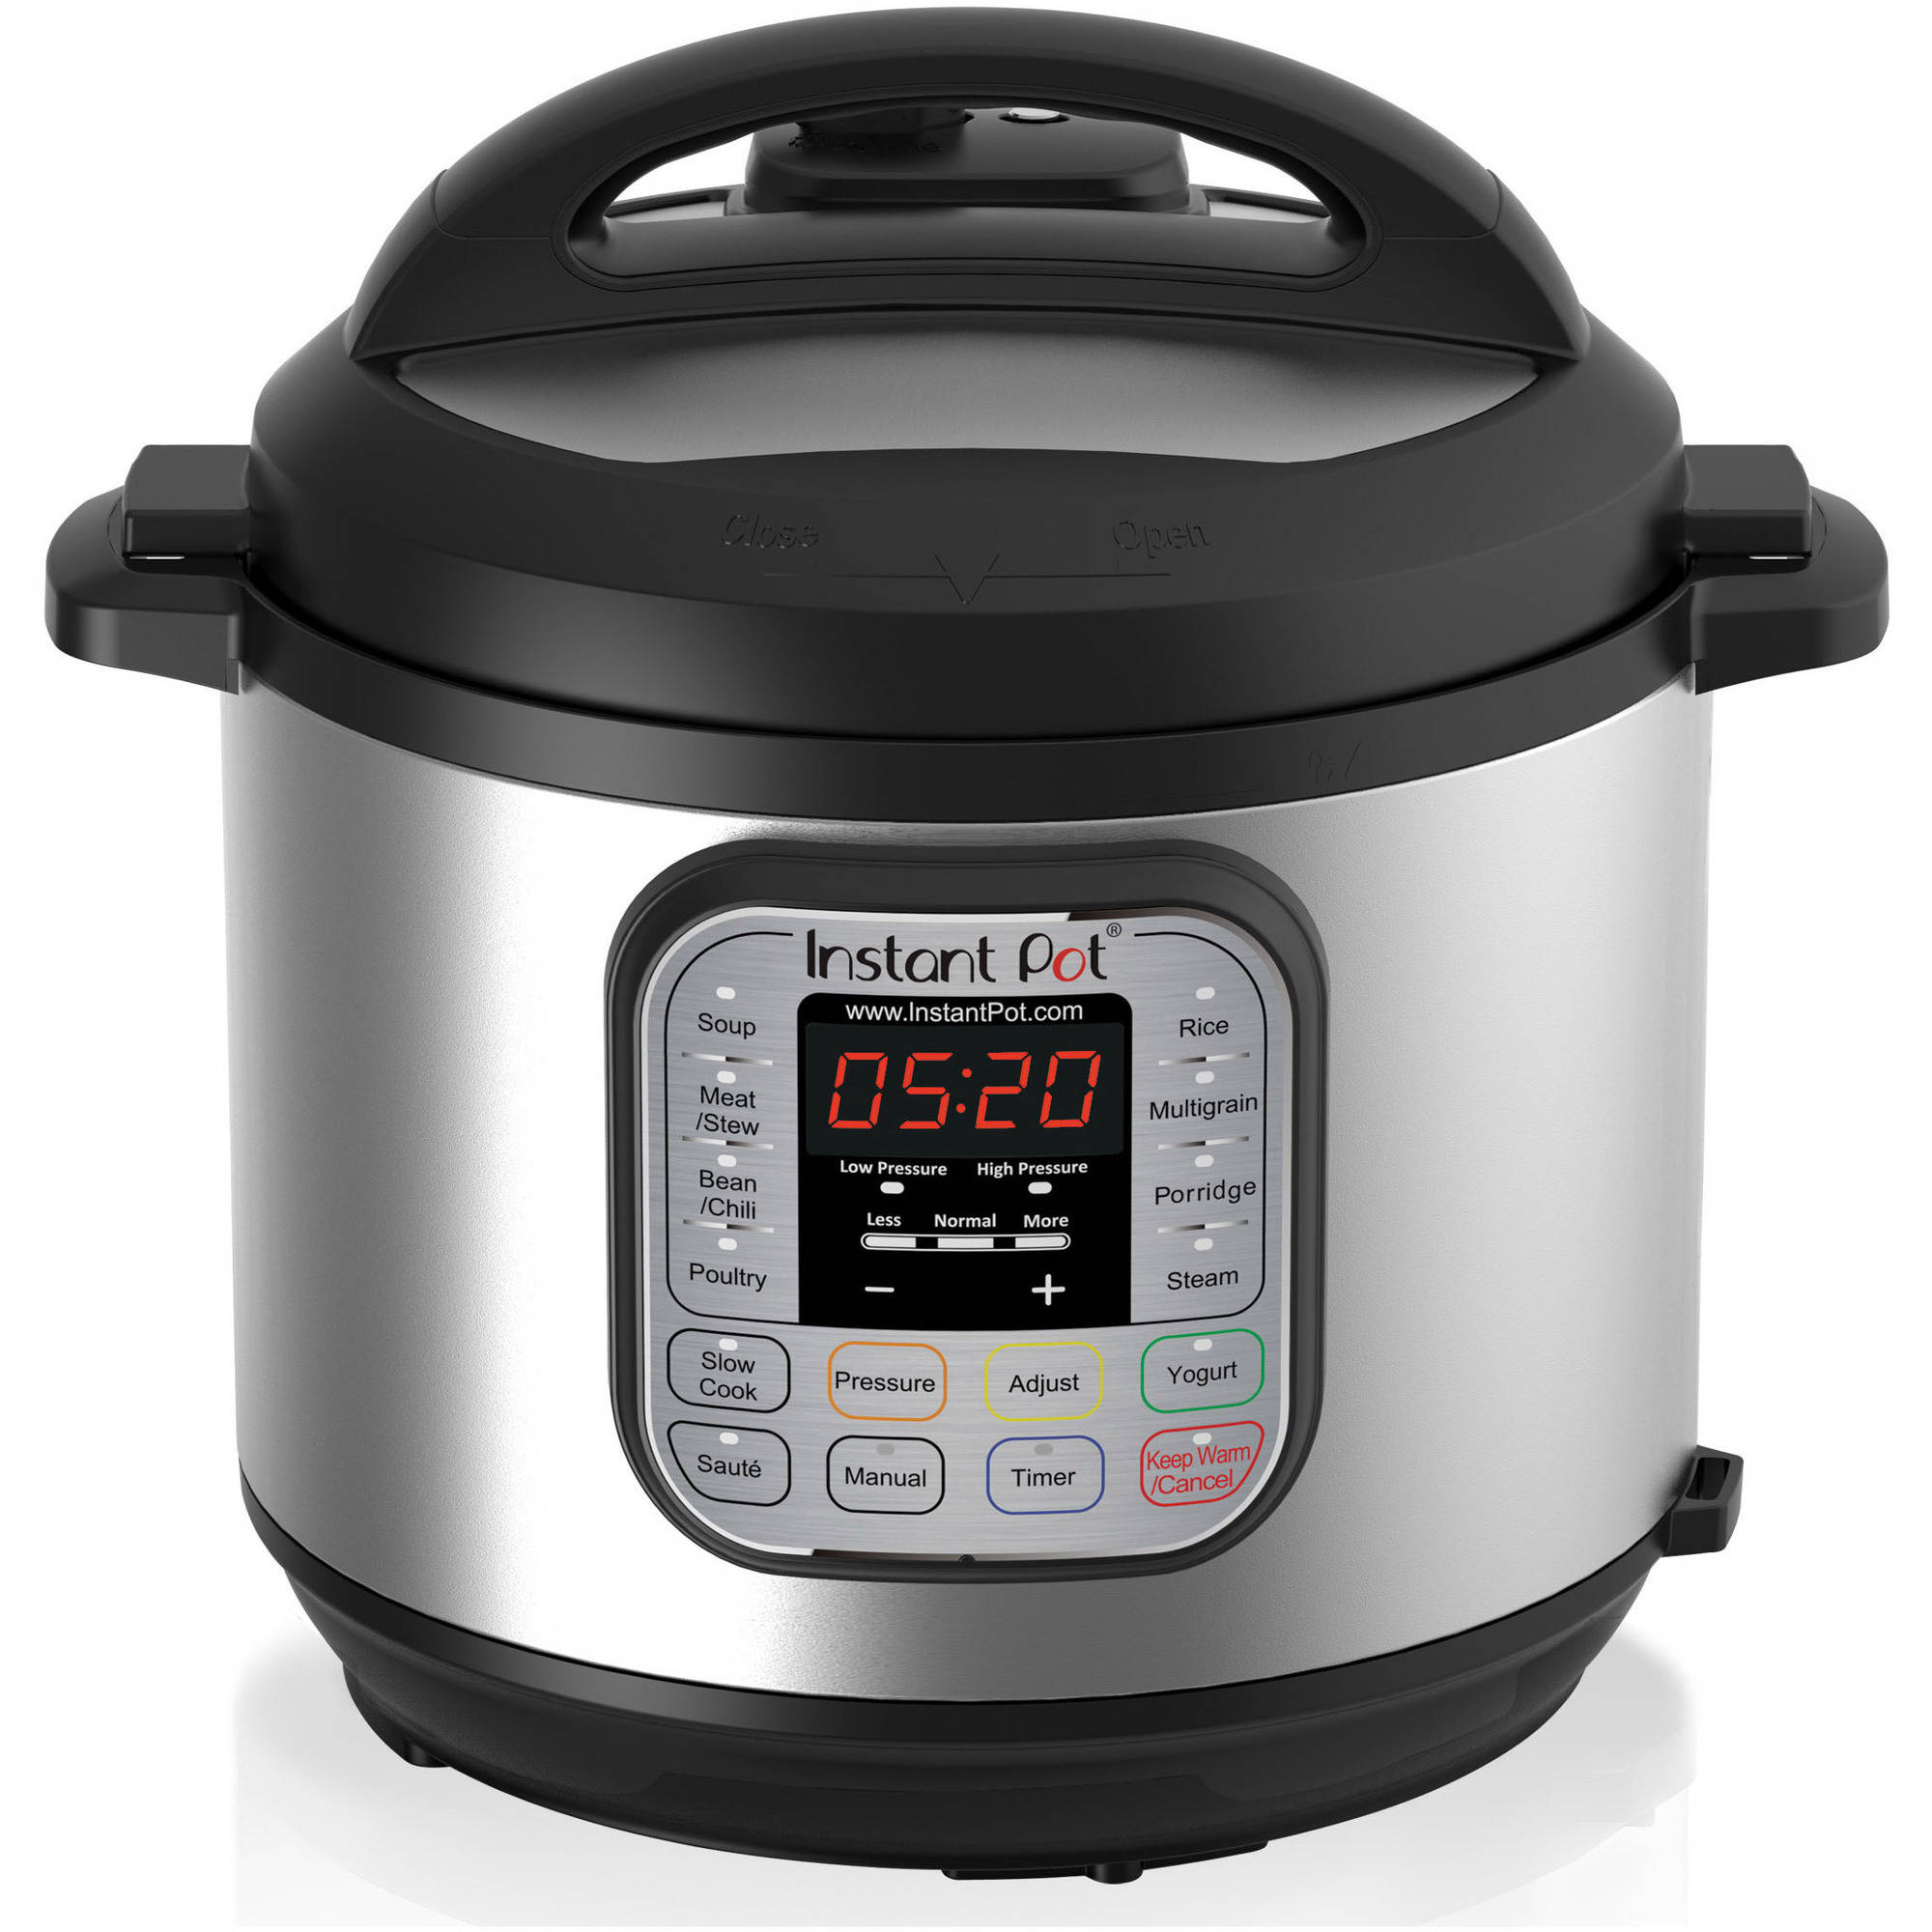 Instant Pot IP-DUO50 Stainless Steel 5-Quart 7-in-1 Multi-Functional Pressure Cooker